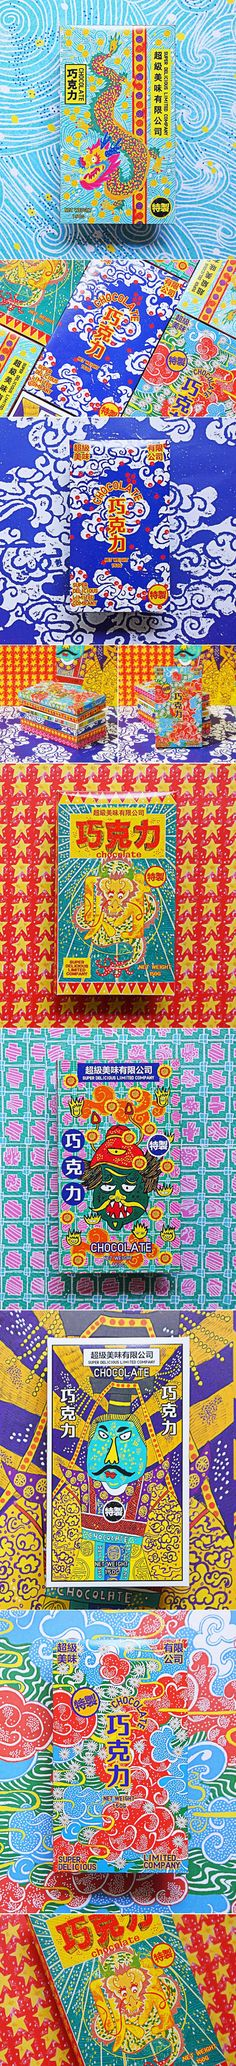 This Colorful Chocolate Takes Inspiration From Chinese Paper Culture and Tradition — The Dieline | Packaging & Branding Design & Innovation News